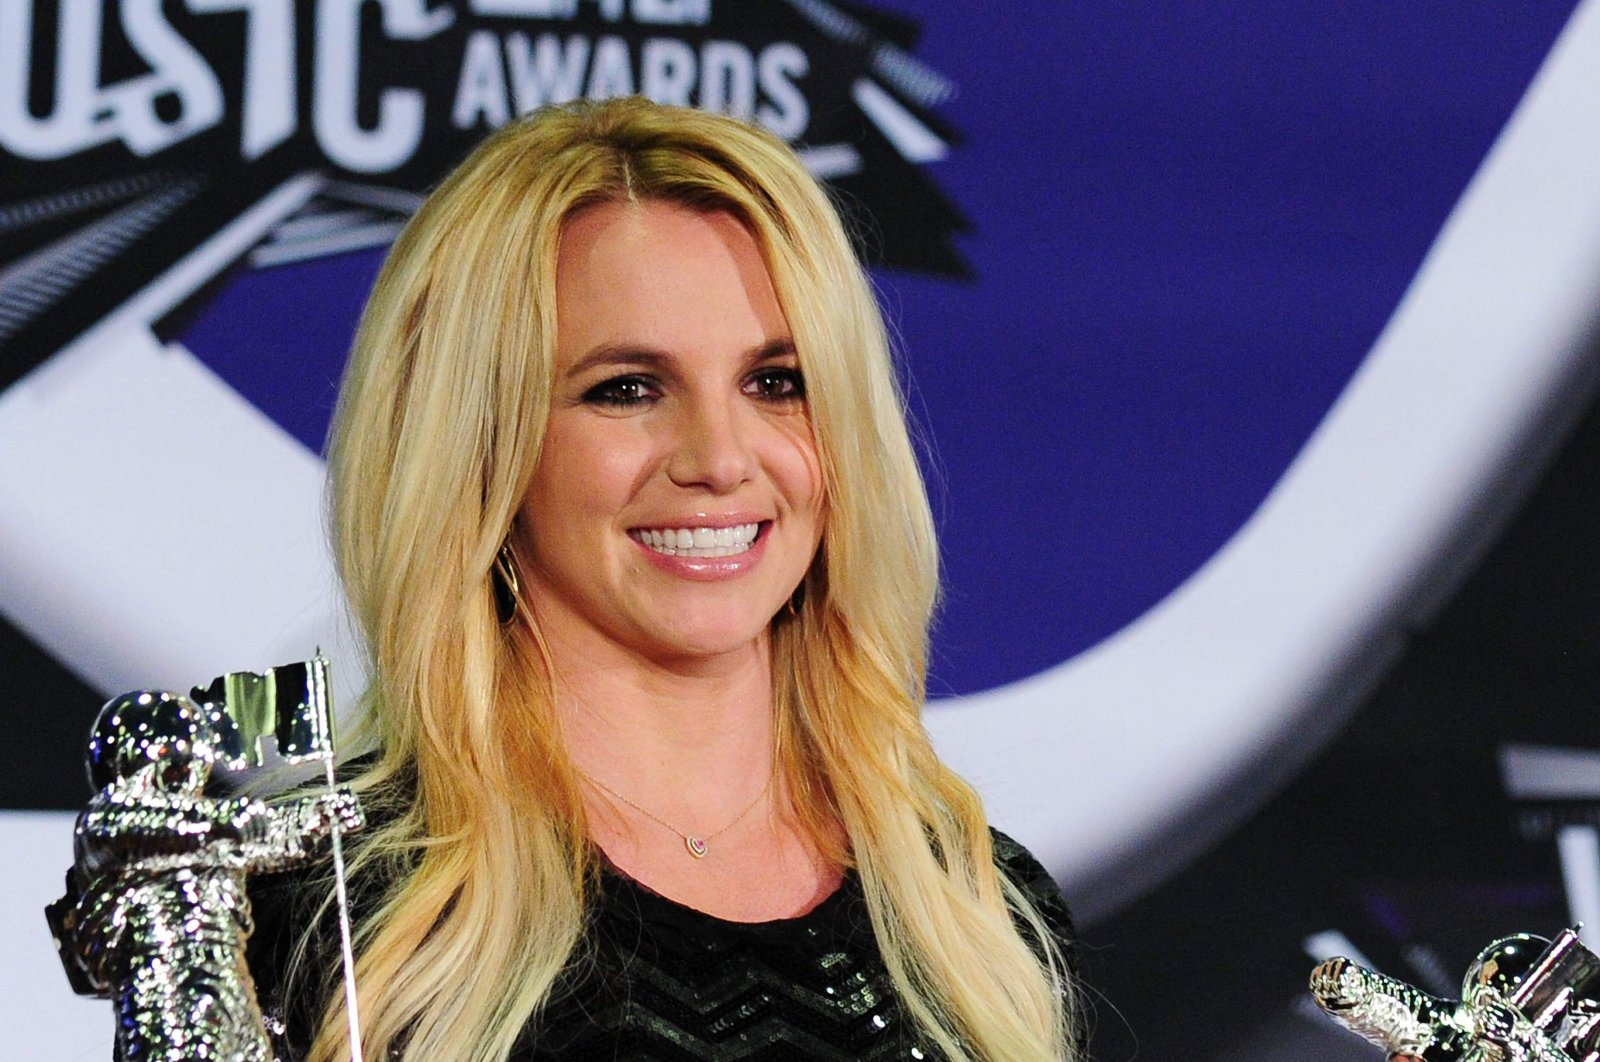 In this file photo Britney Spears holds her Best Pop Video Award and her Michael Jackson Video Vanguard Award in the press room at the 2011 MTV Video Music Awards (VMAs) August 28, 2011 at the Noika Theatre in downtown Los Angeles, California. (AFP Photo)